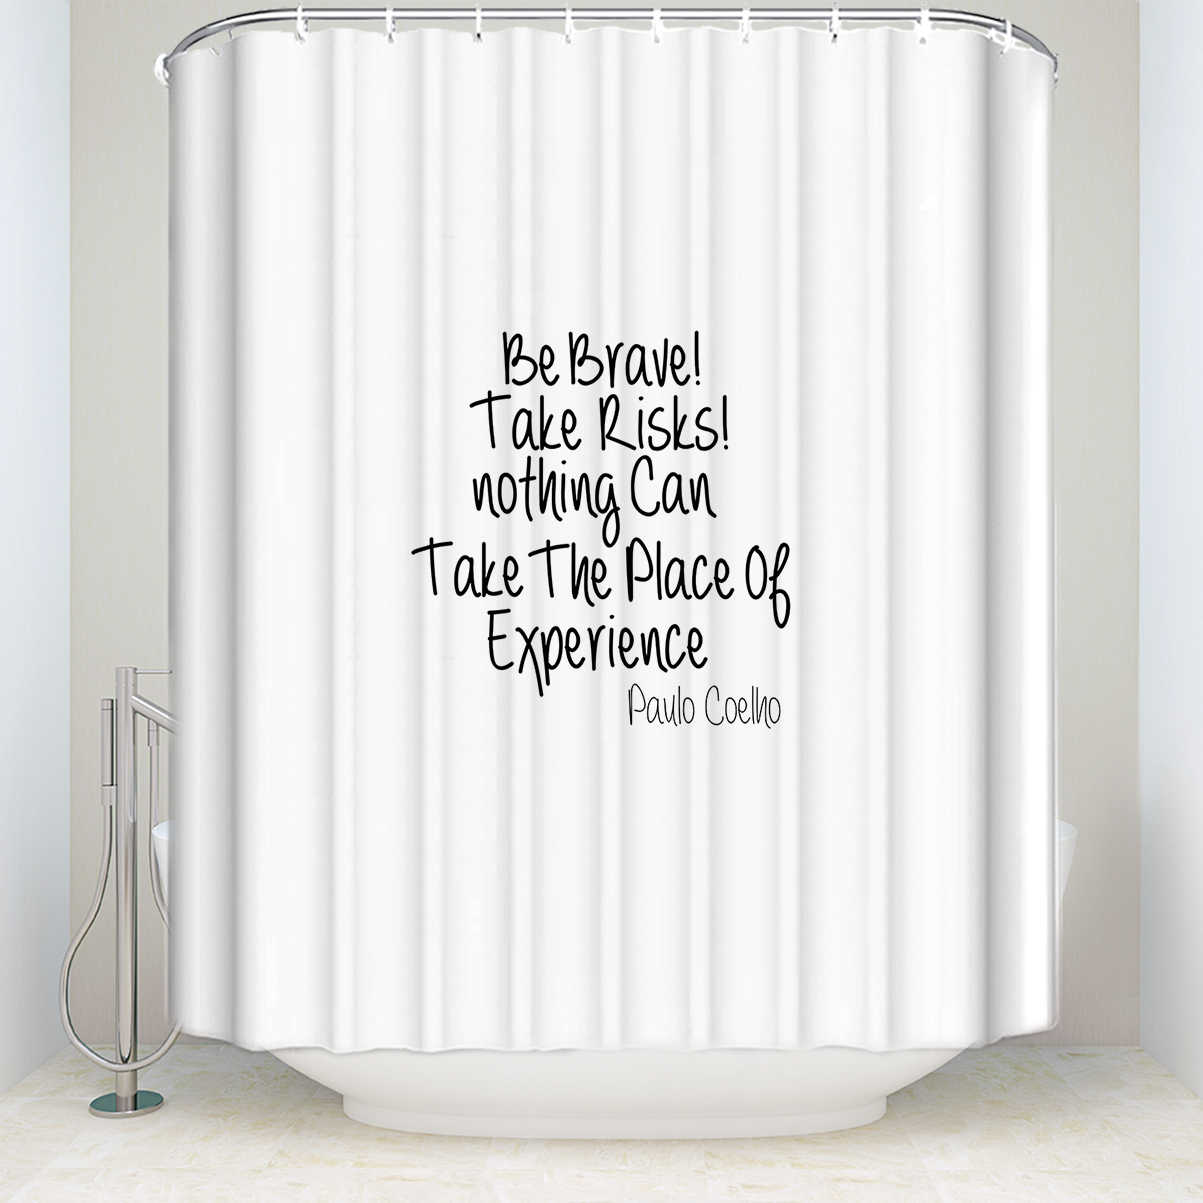 Charmhome Hot Sale Shower Curtain Be Brave Quote Personalized